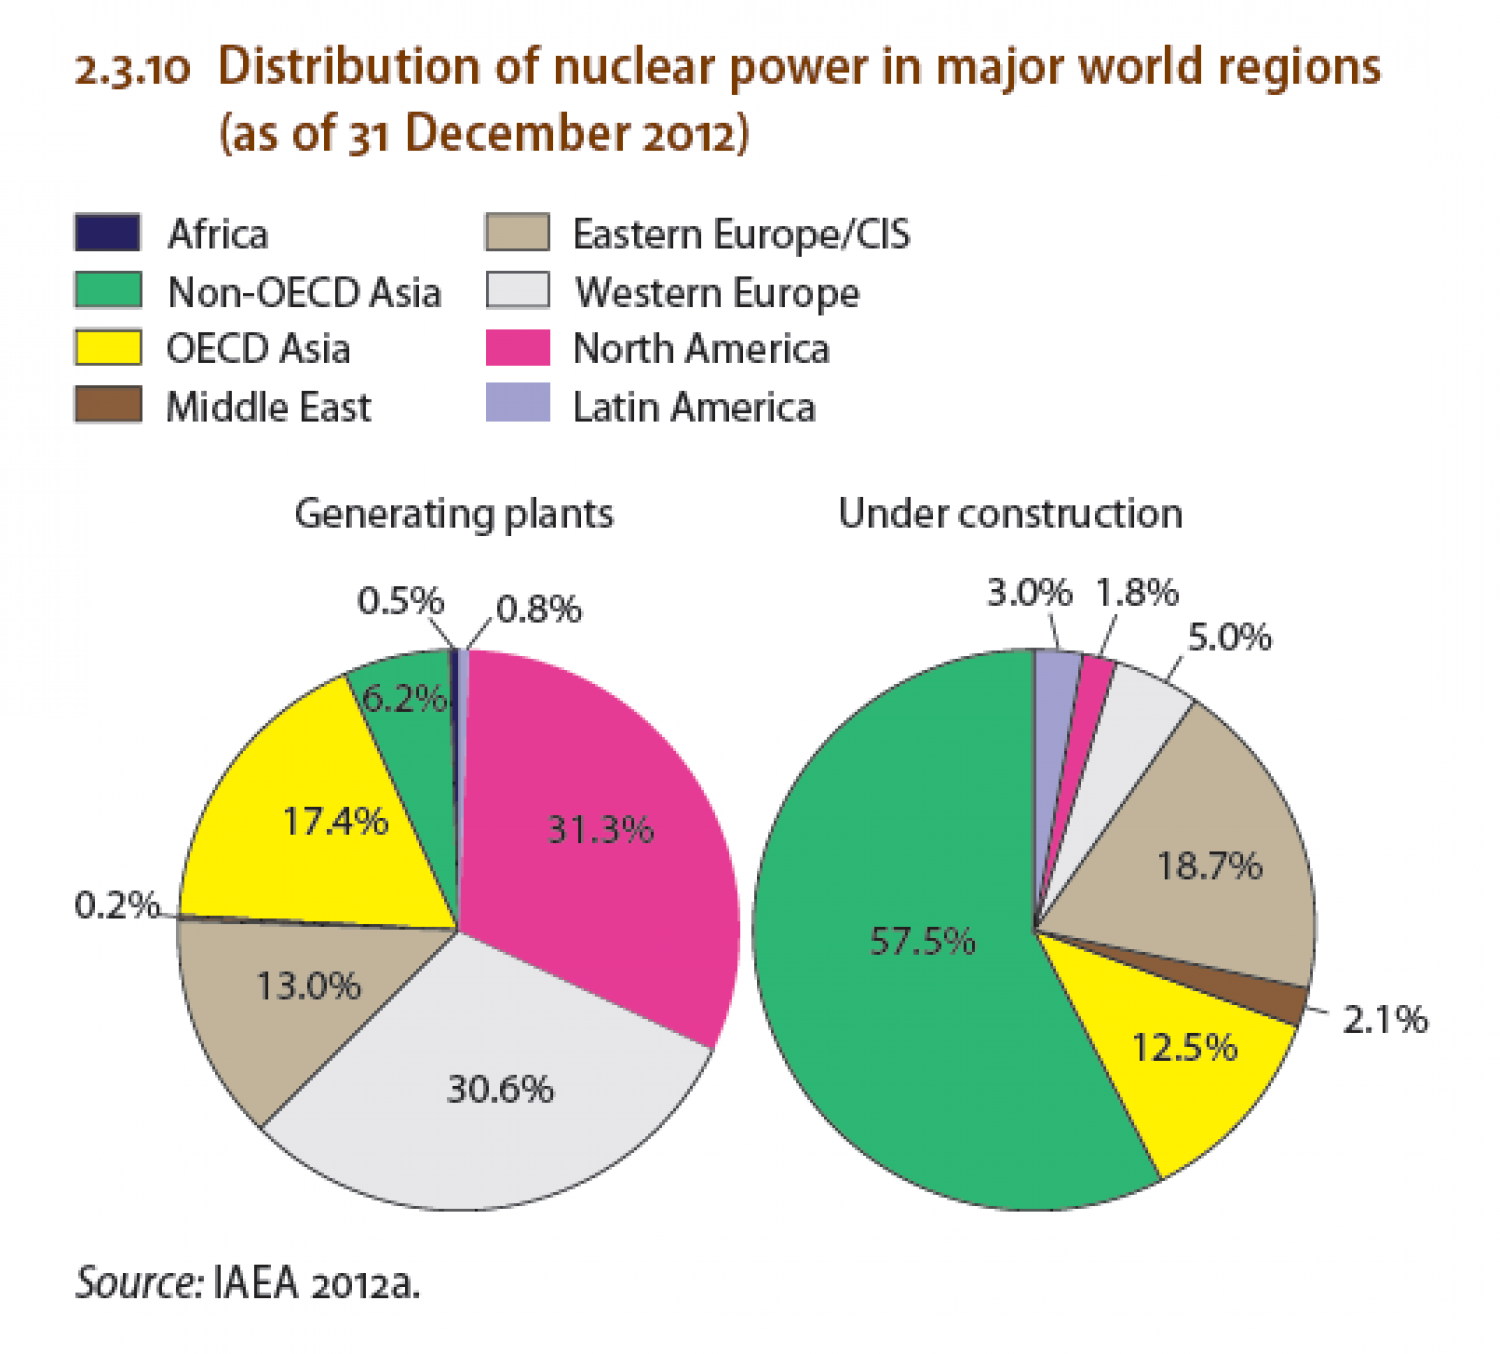 Distribution of nuclear power in major world regions (as of 31 December 2012) Infographic